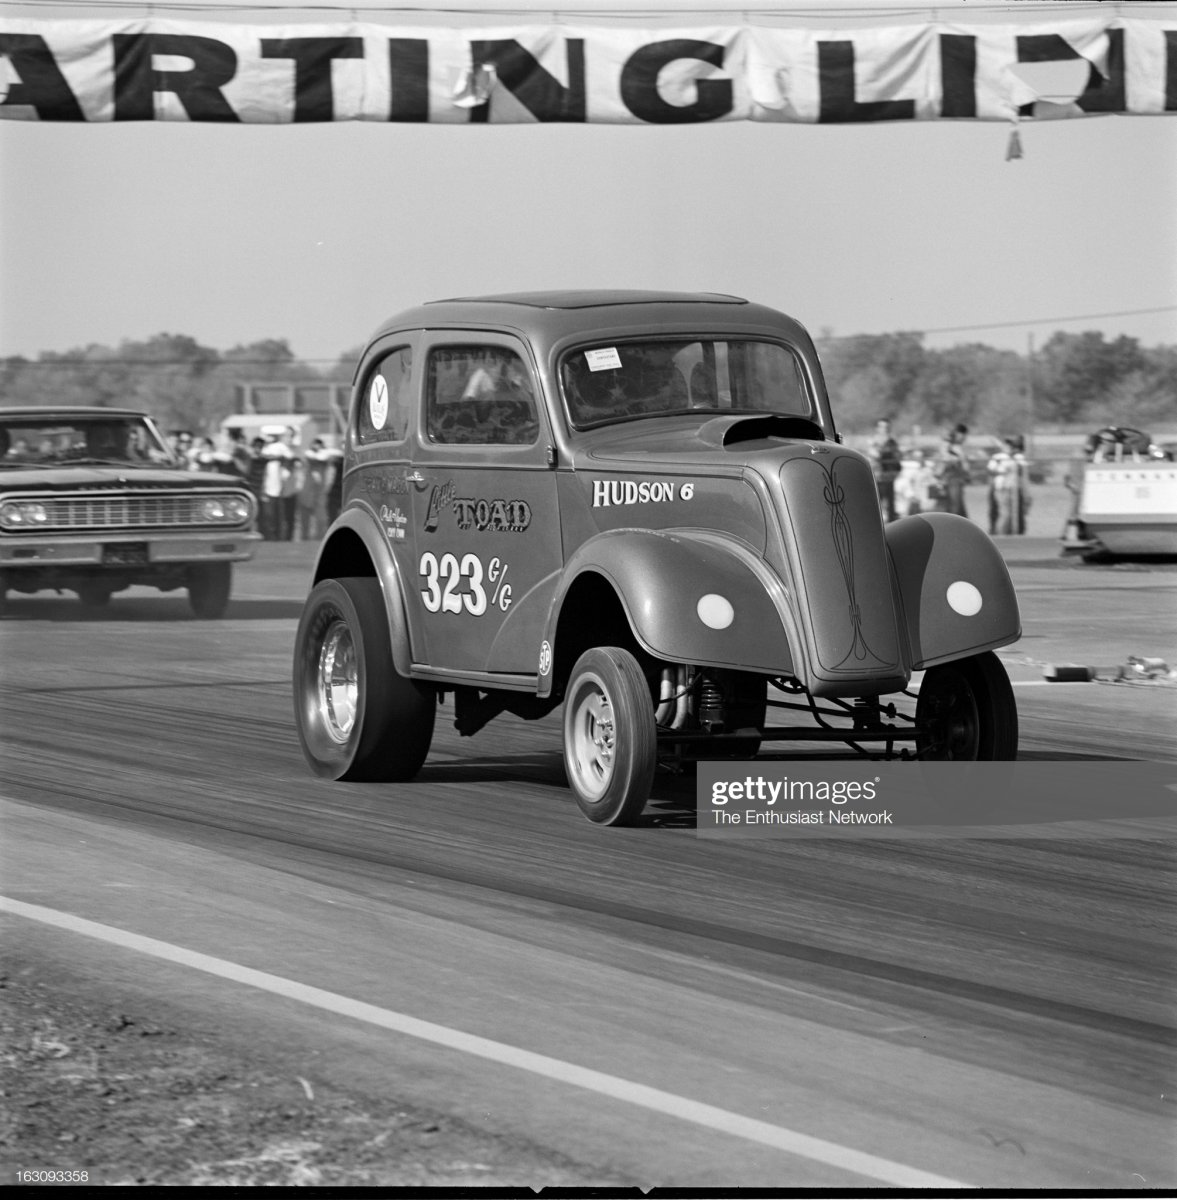 little toad 1965 NHRA World Championshi.jpg